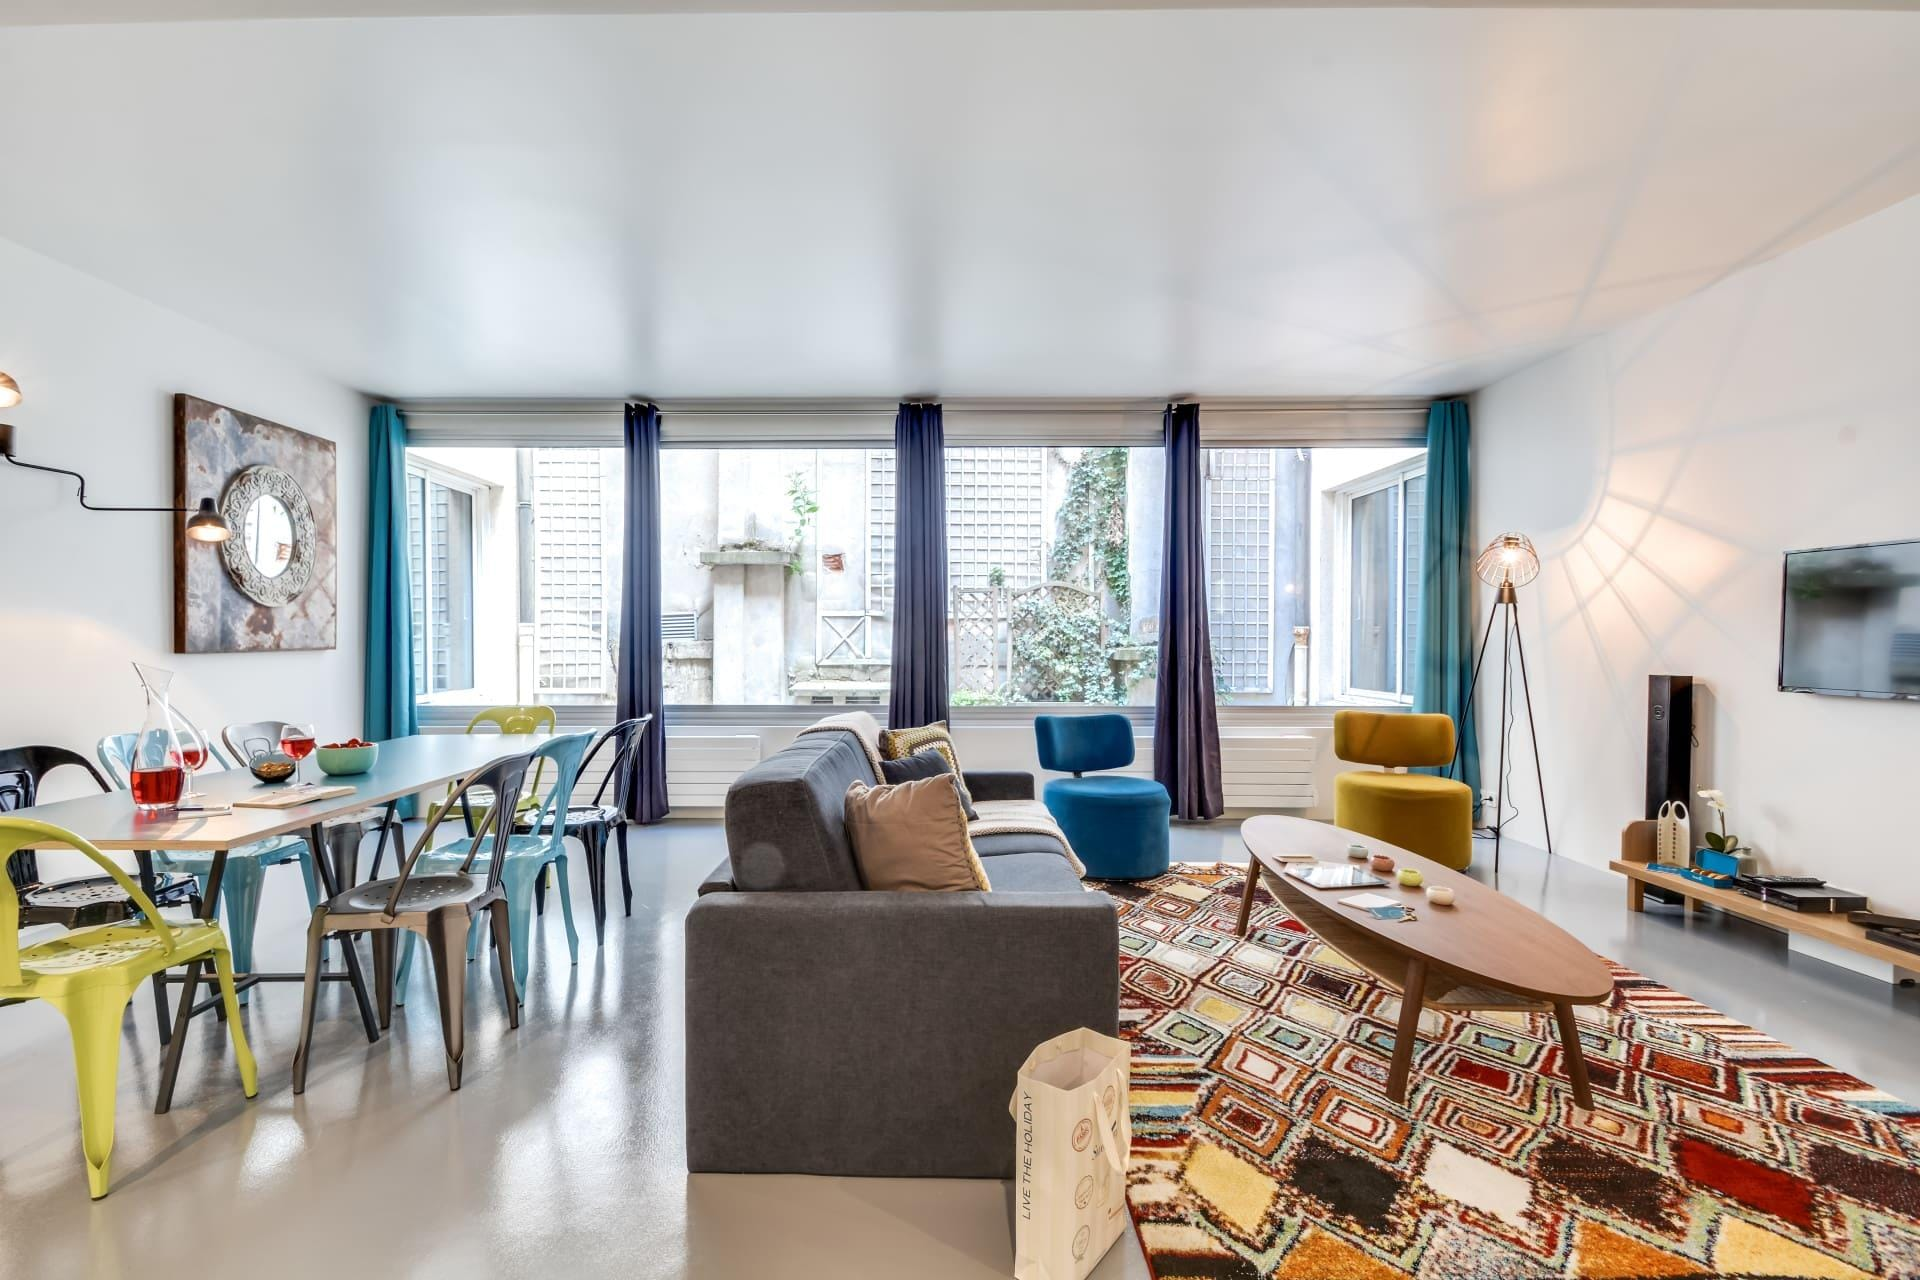 Stunning Apartment Can Accommodate Up To 10 Guests in Paris